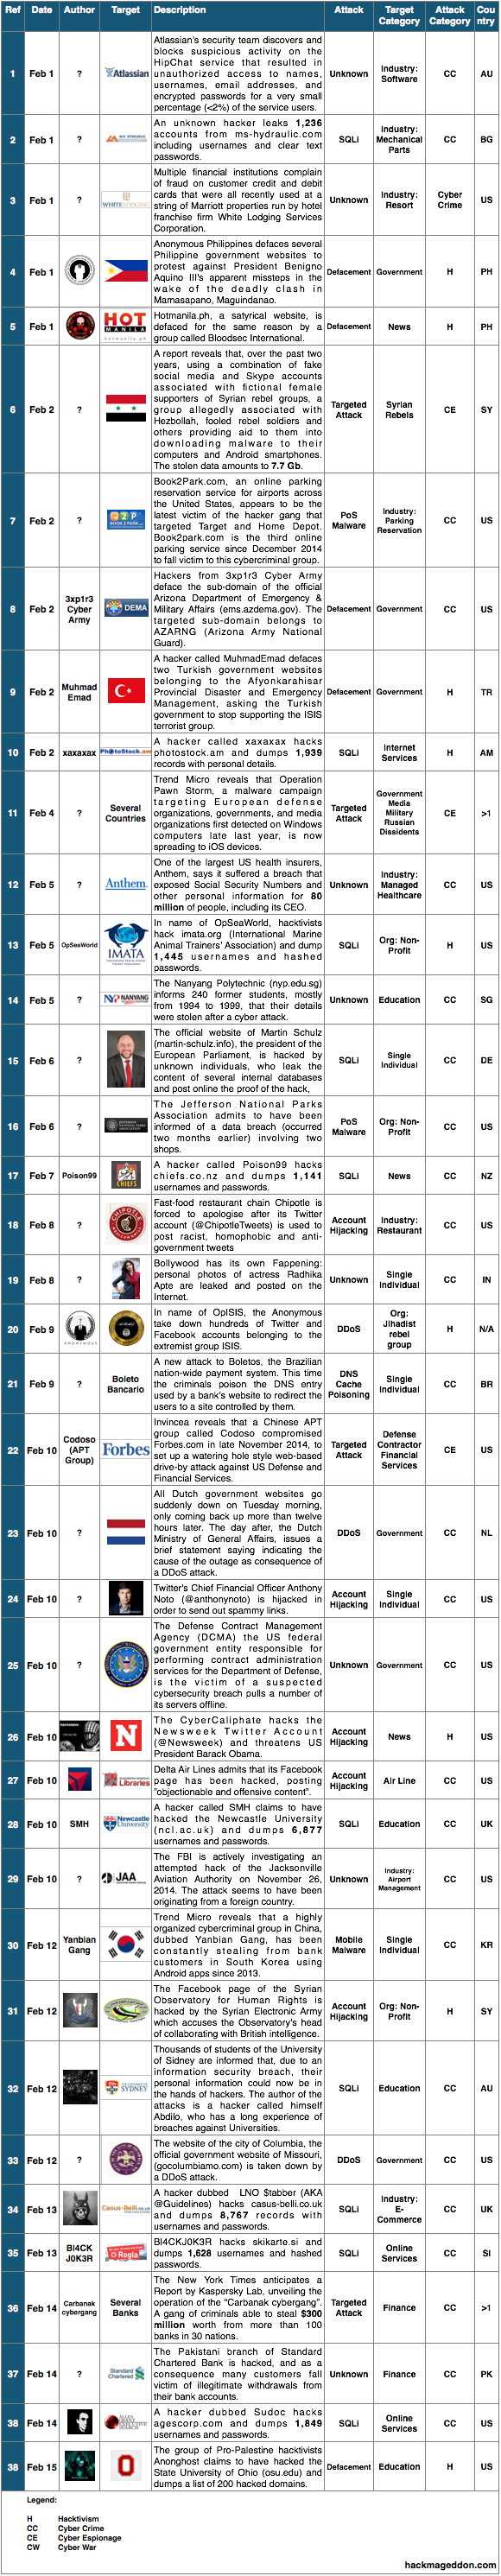 1-15 Feb 2015 Cyber Attacks Timeline